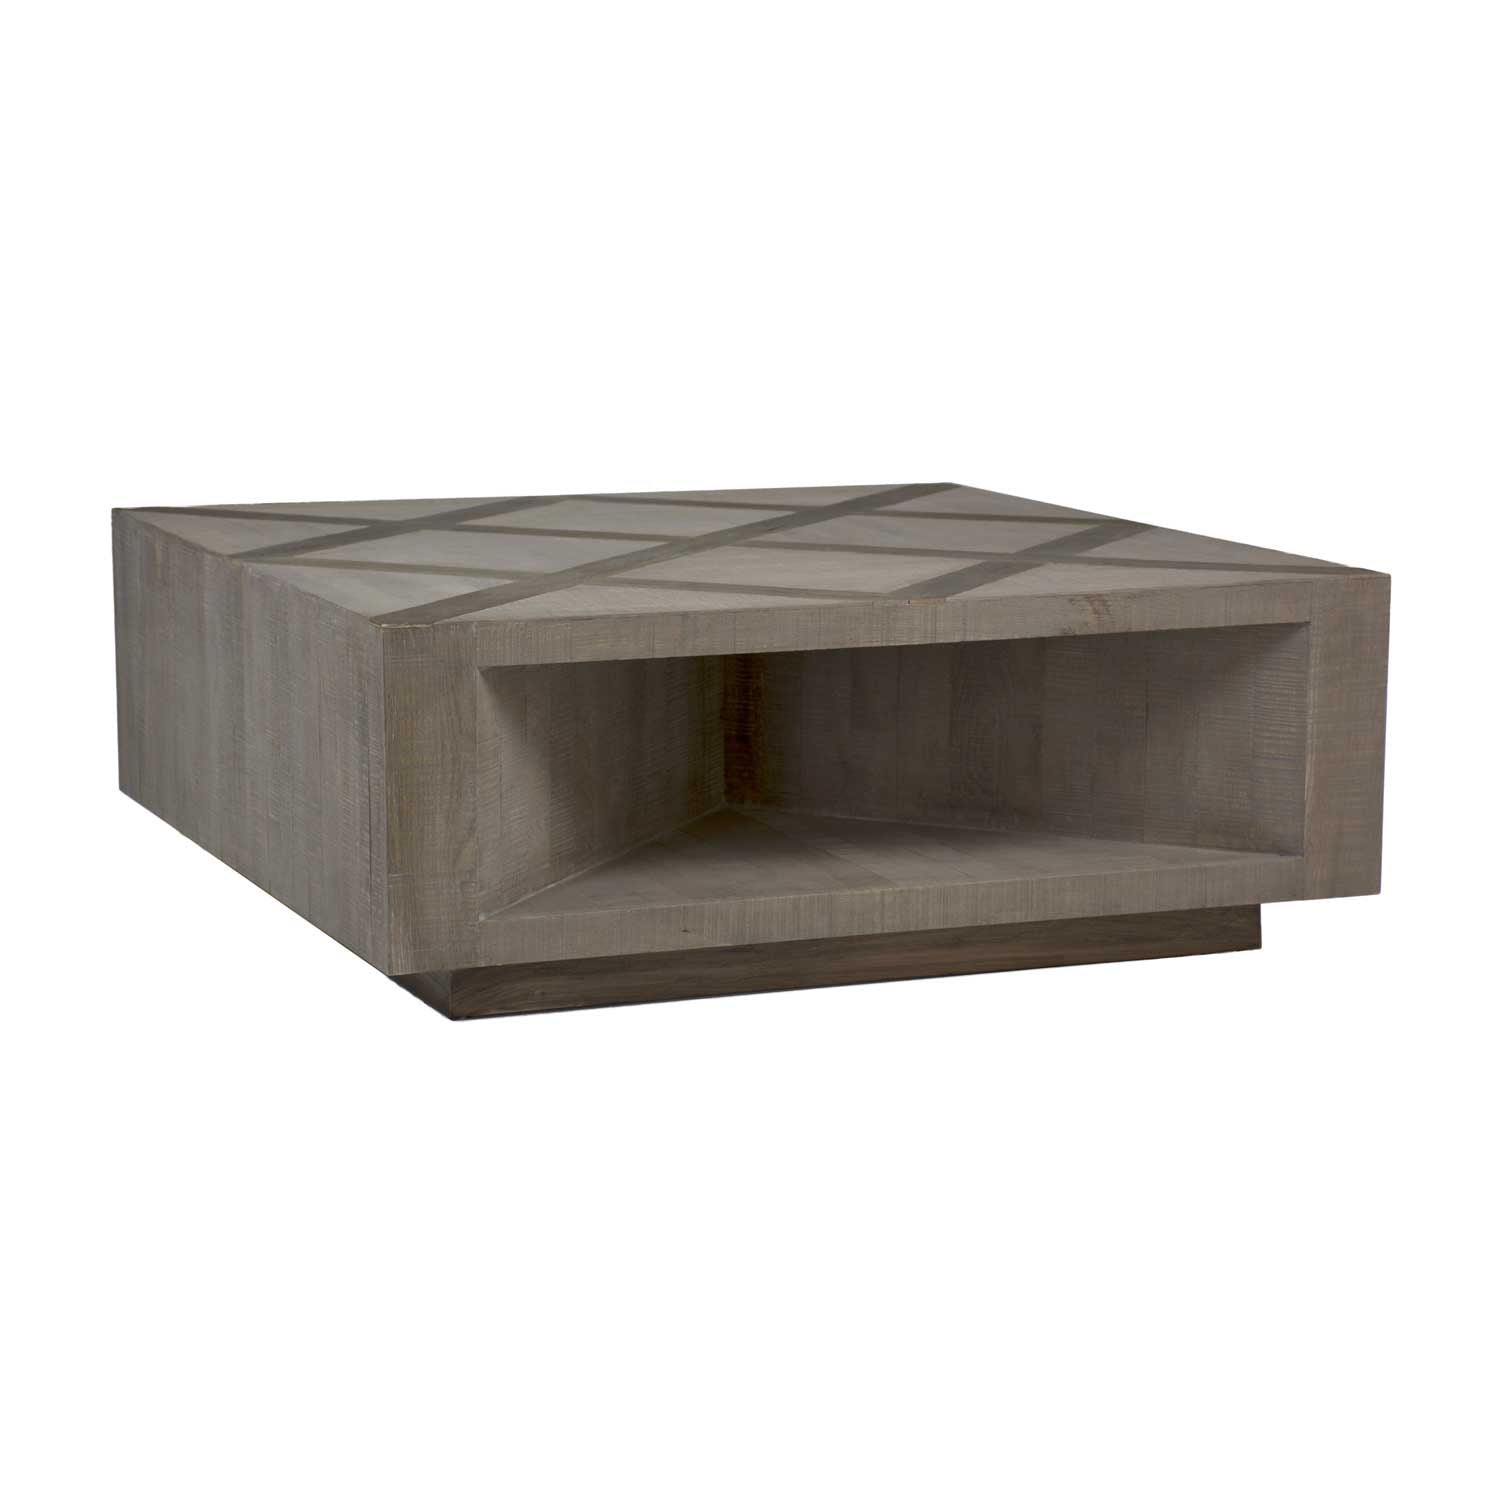 Oak & Untouched Elm Coffee Table - WishBasket